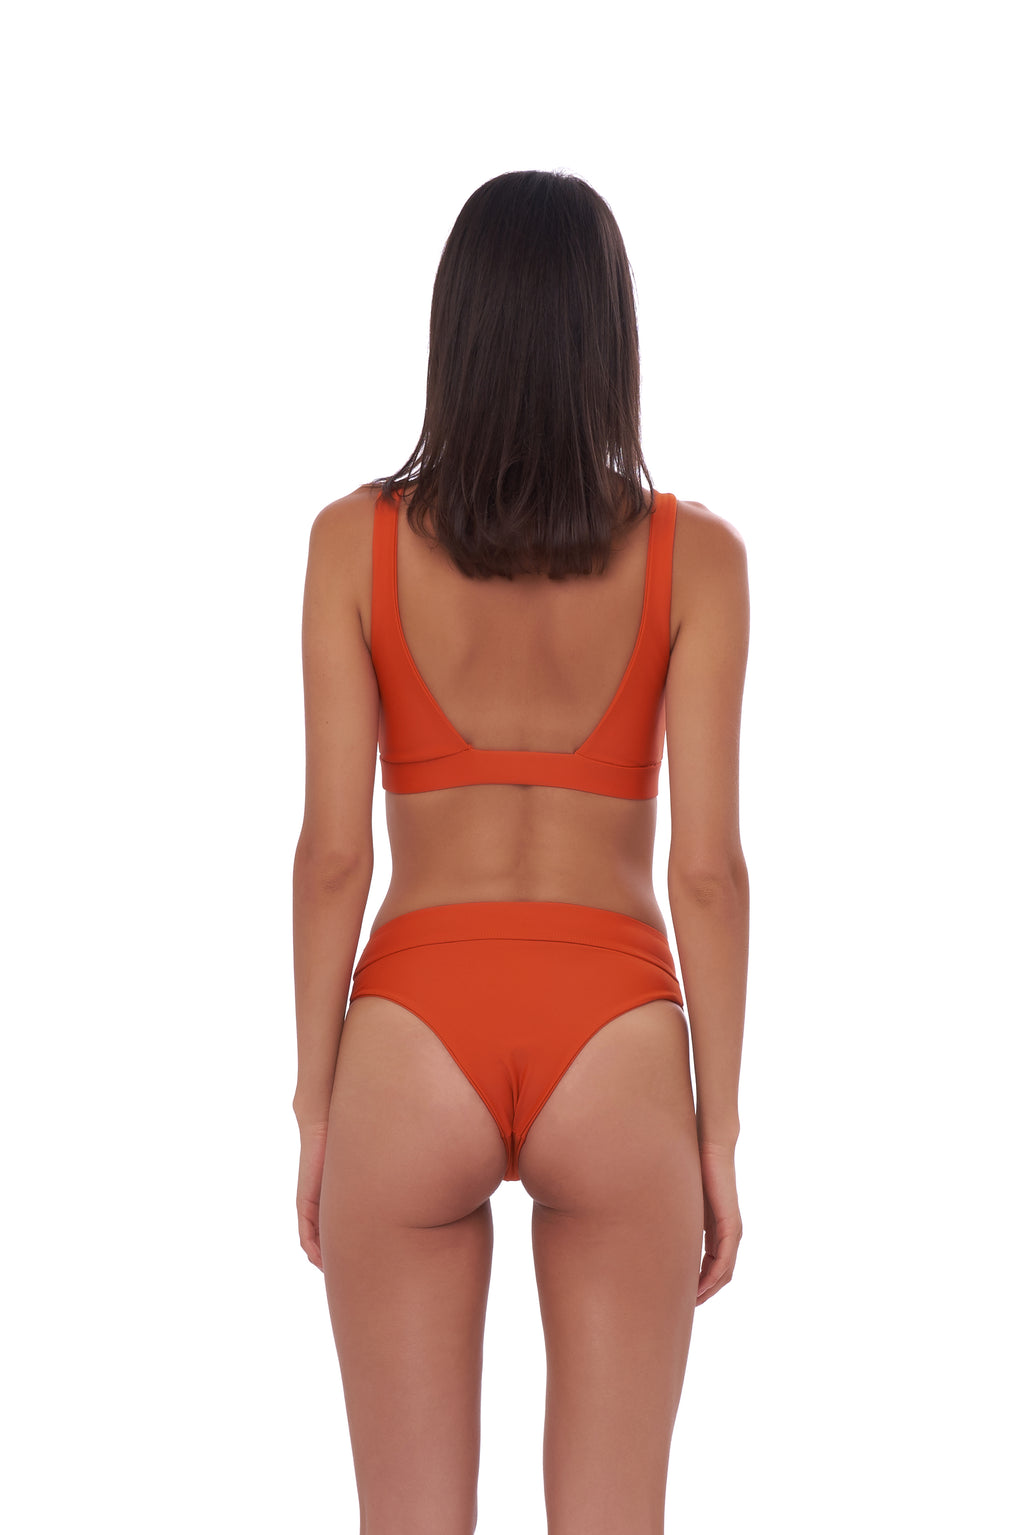 Storm Swimwear - Super Paradise - Super Style High waist brief in Sunburnt Orange